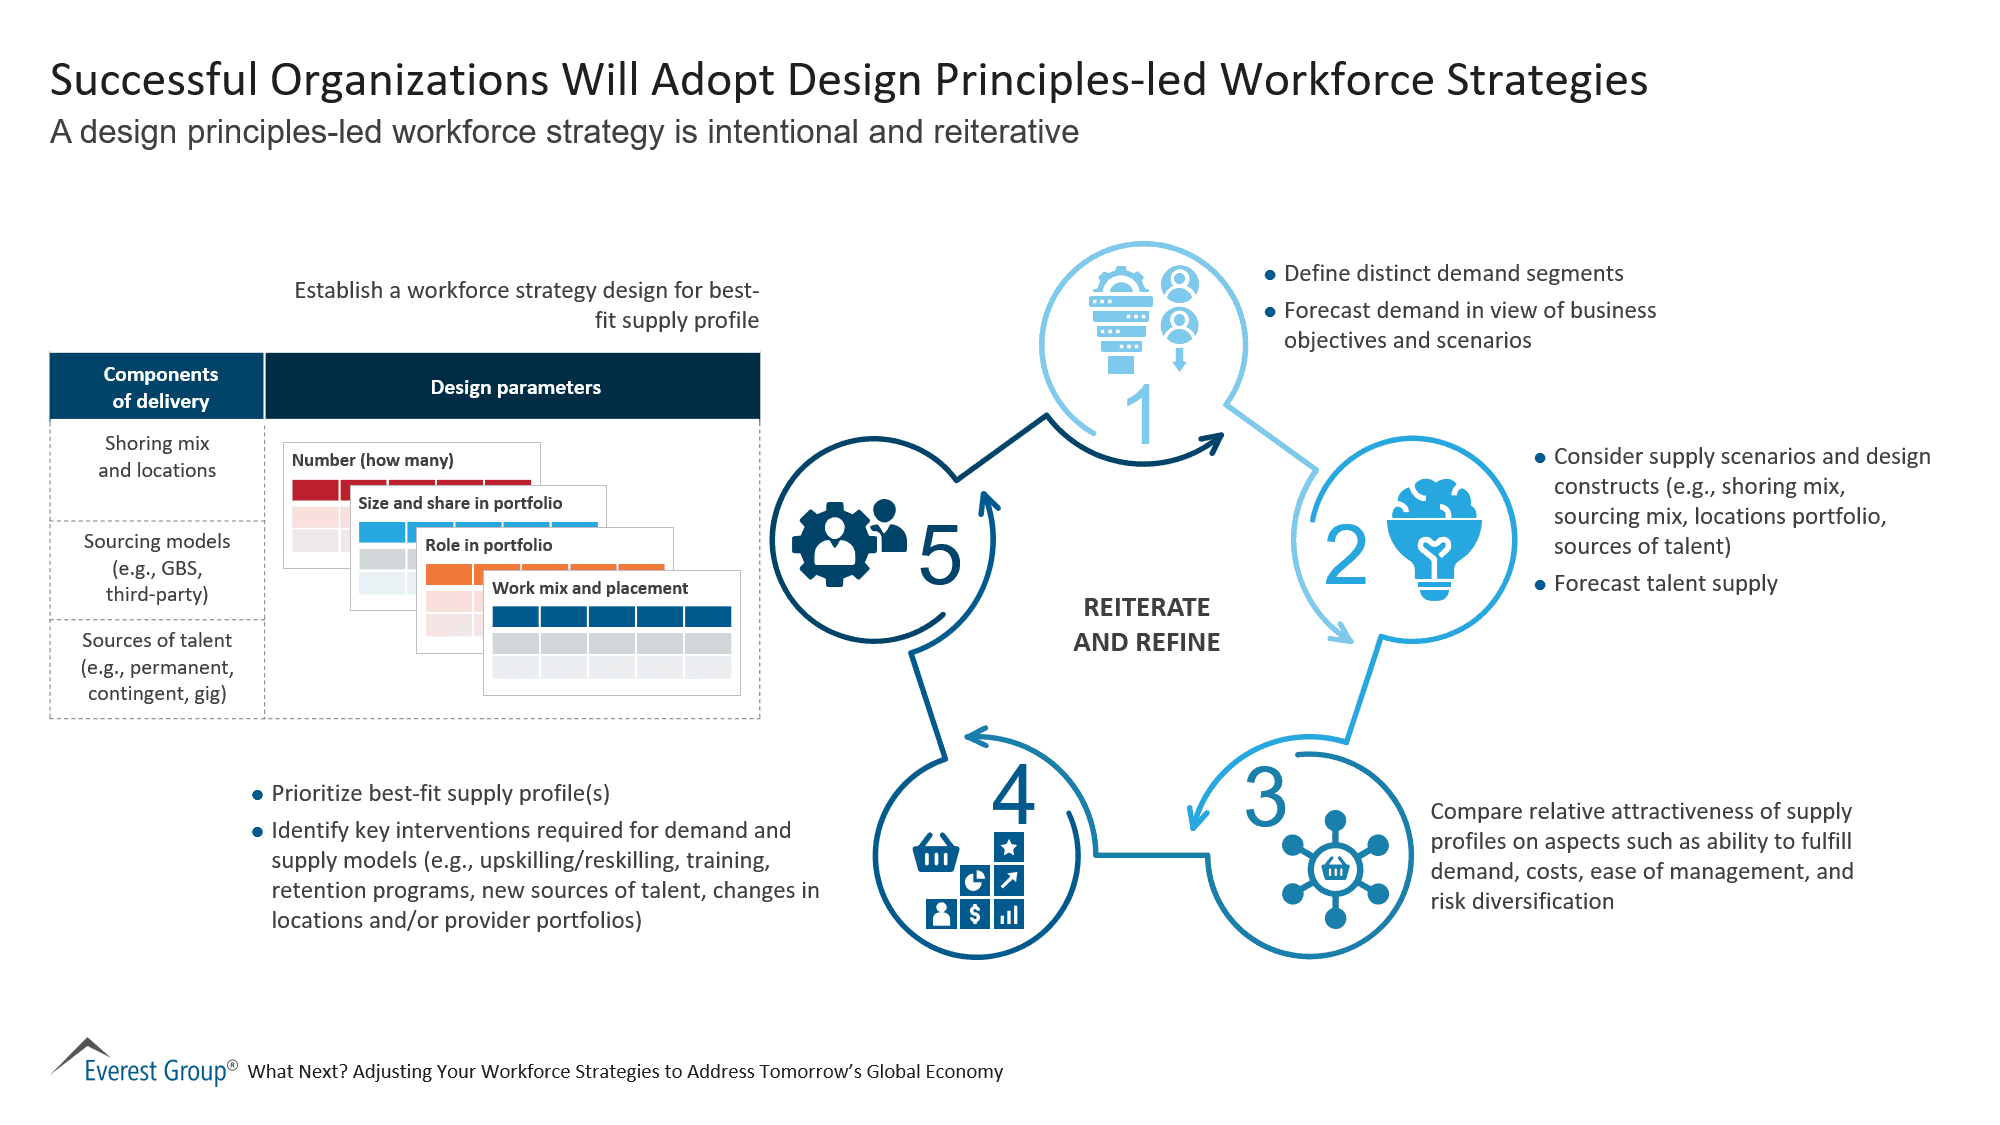 Successful Organizations Will Adopt Design Principles-led Workforce Strategies